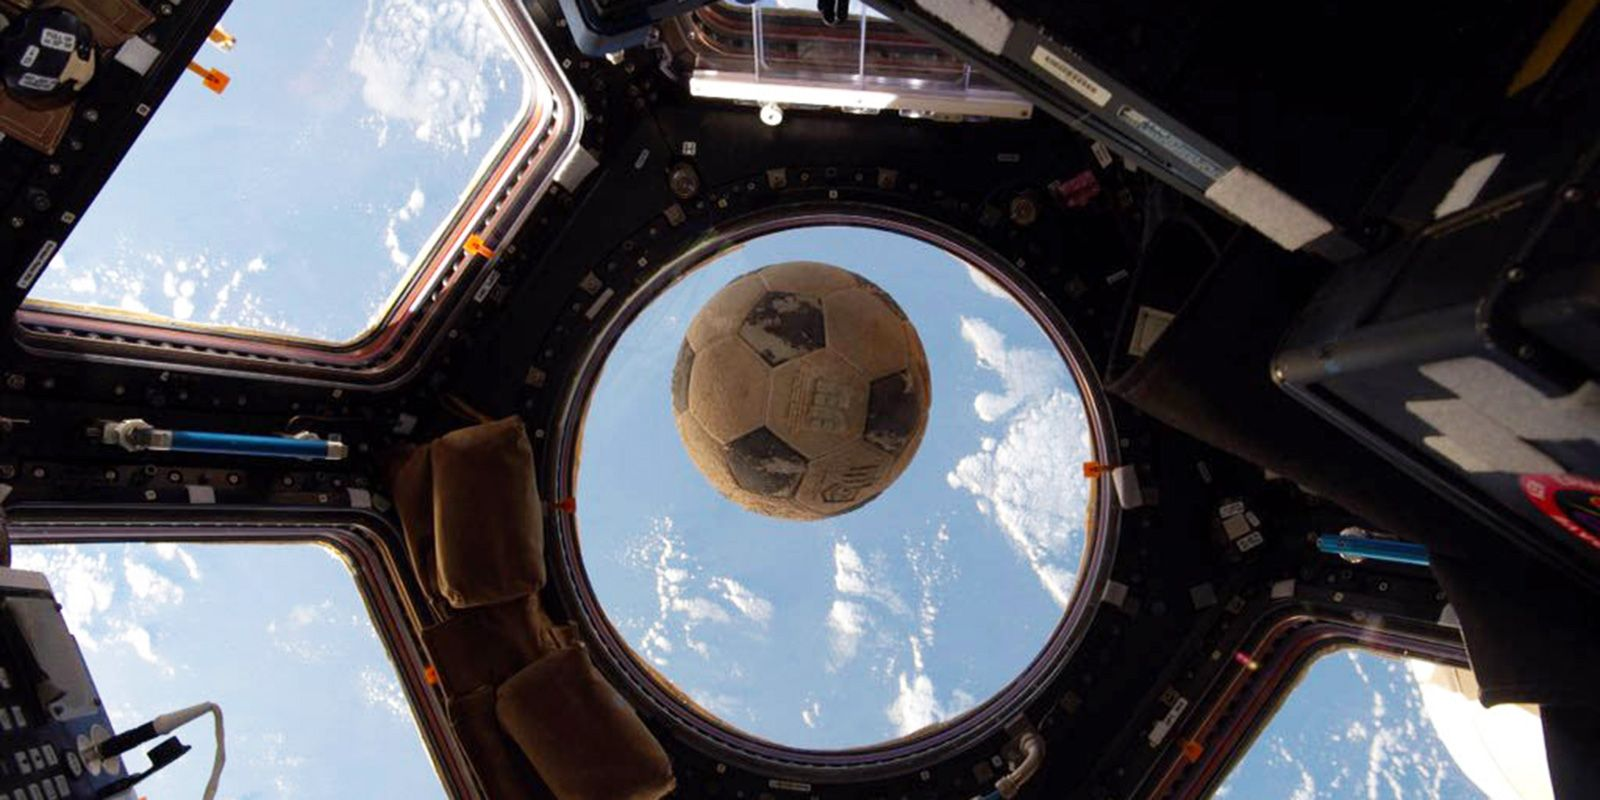 NASA astronaut Ellison Onizuka's soccer ball that survived